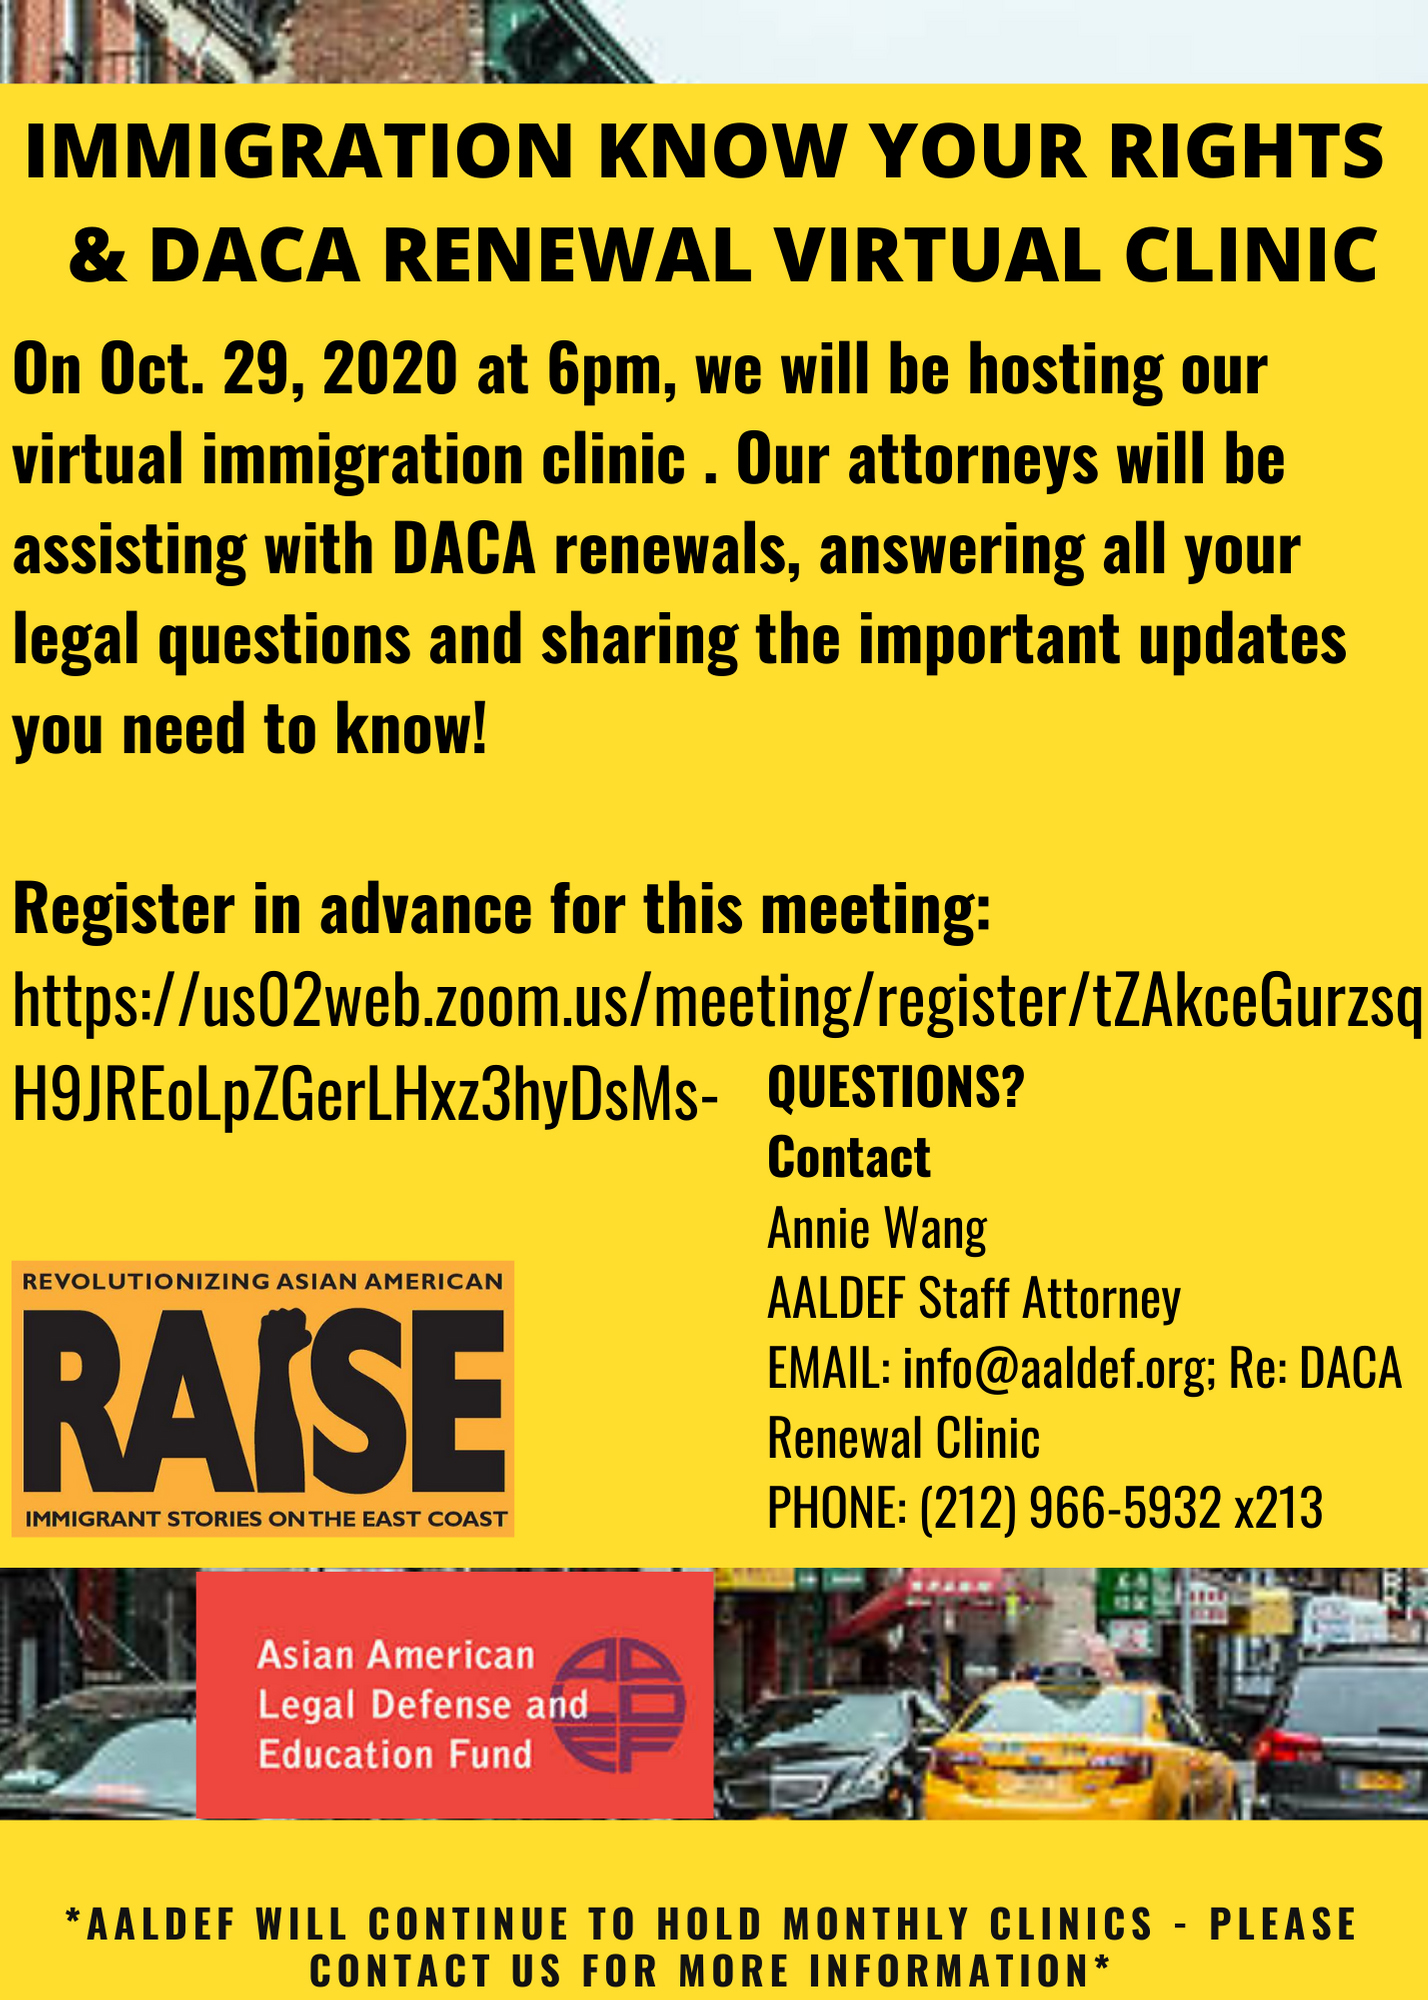 Image for Oct. 29 - AALDEF immigration/DACA renewal clinic